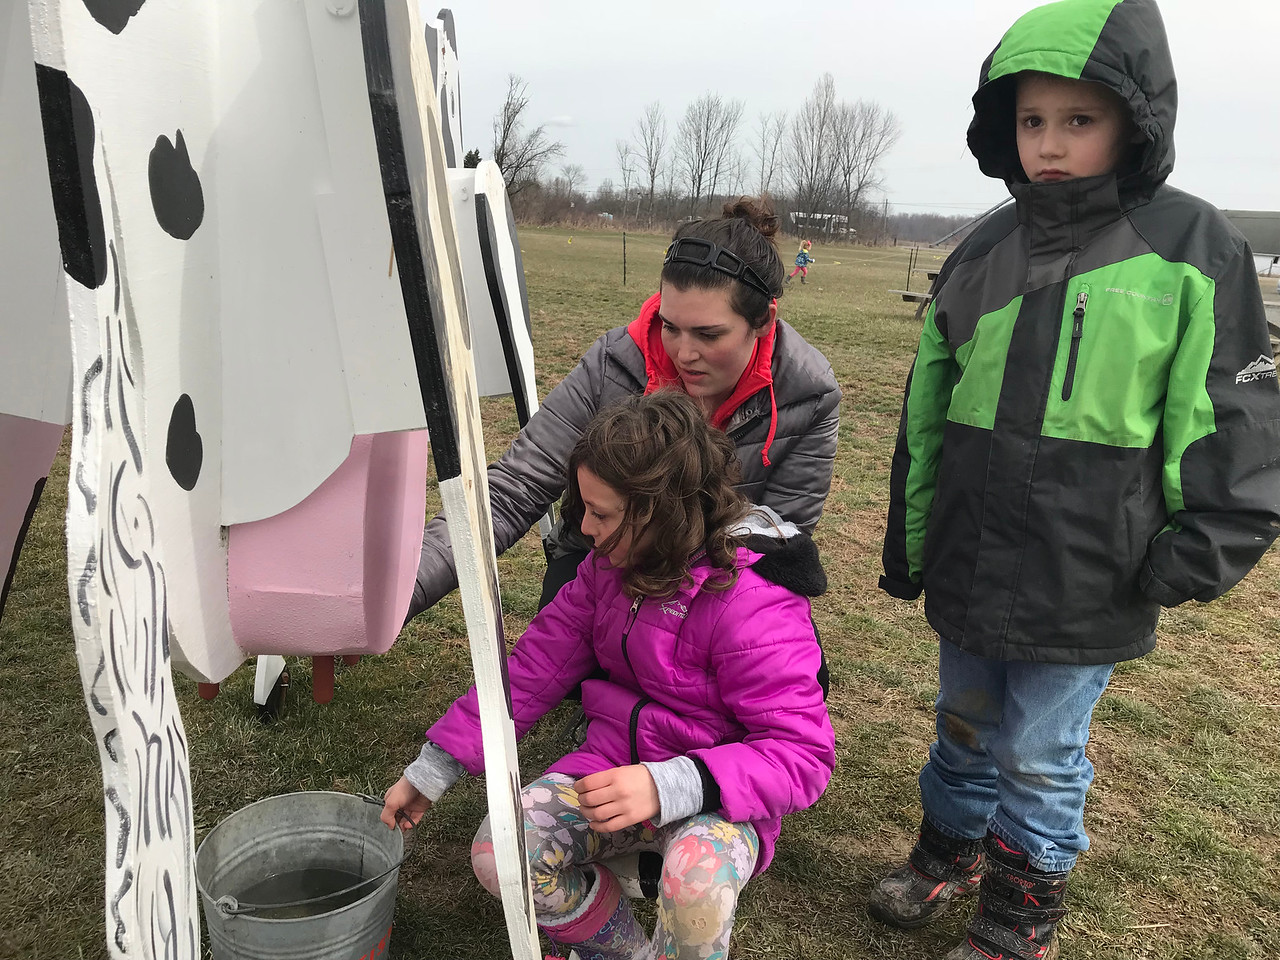 NATHAN HAVENNER / GAZETTE  Madelyn Aliff, 8, Eli Sawyer, 6, and Ashley Blagg of North Ridgeville check out a wooden cow that teaches kids how cows are milked during the Easter Egg Hunt and Farm Fun event at Beriswill Farms, 2200 Station Road, Liverpool Township.